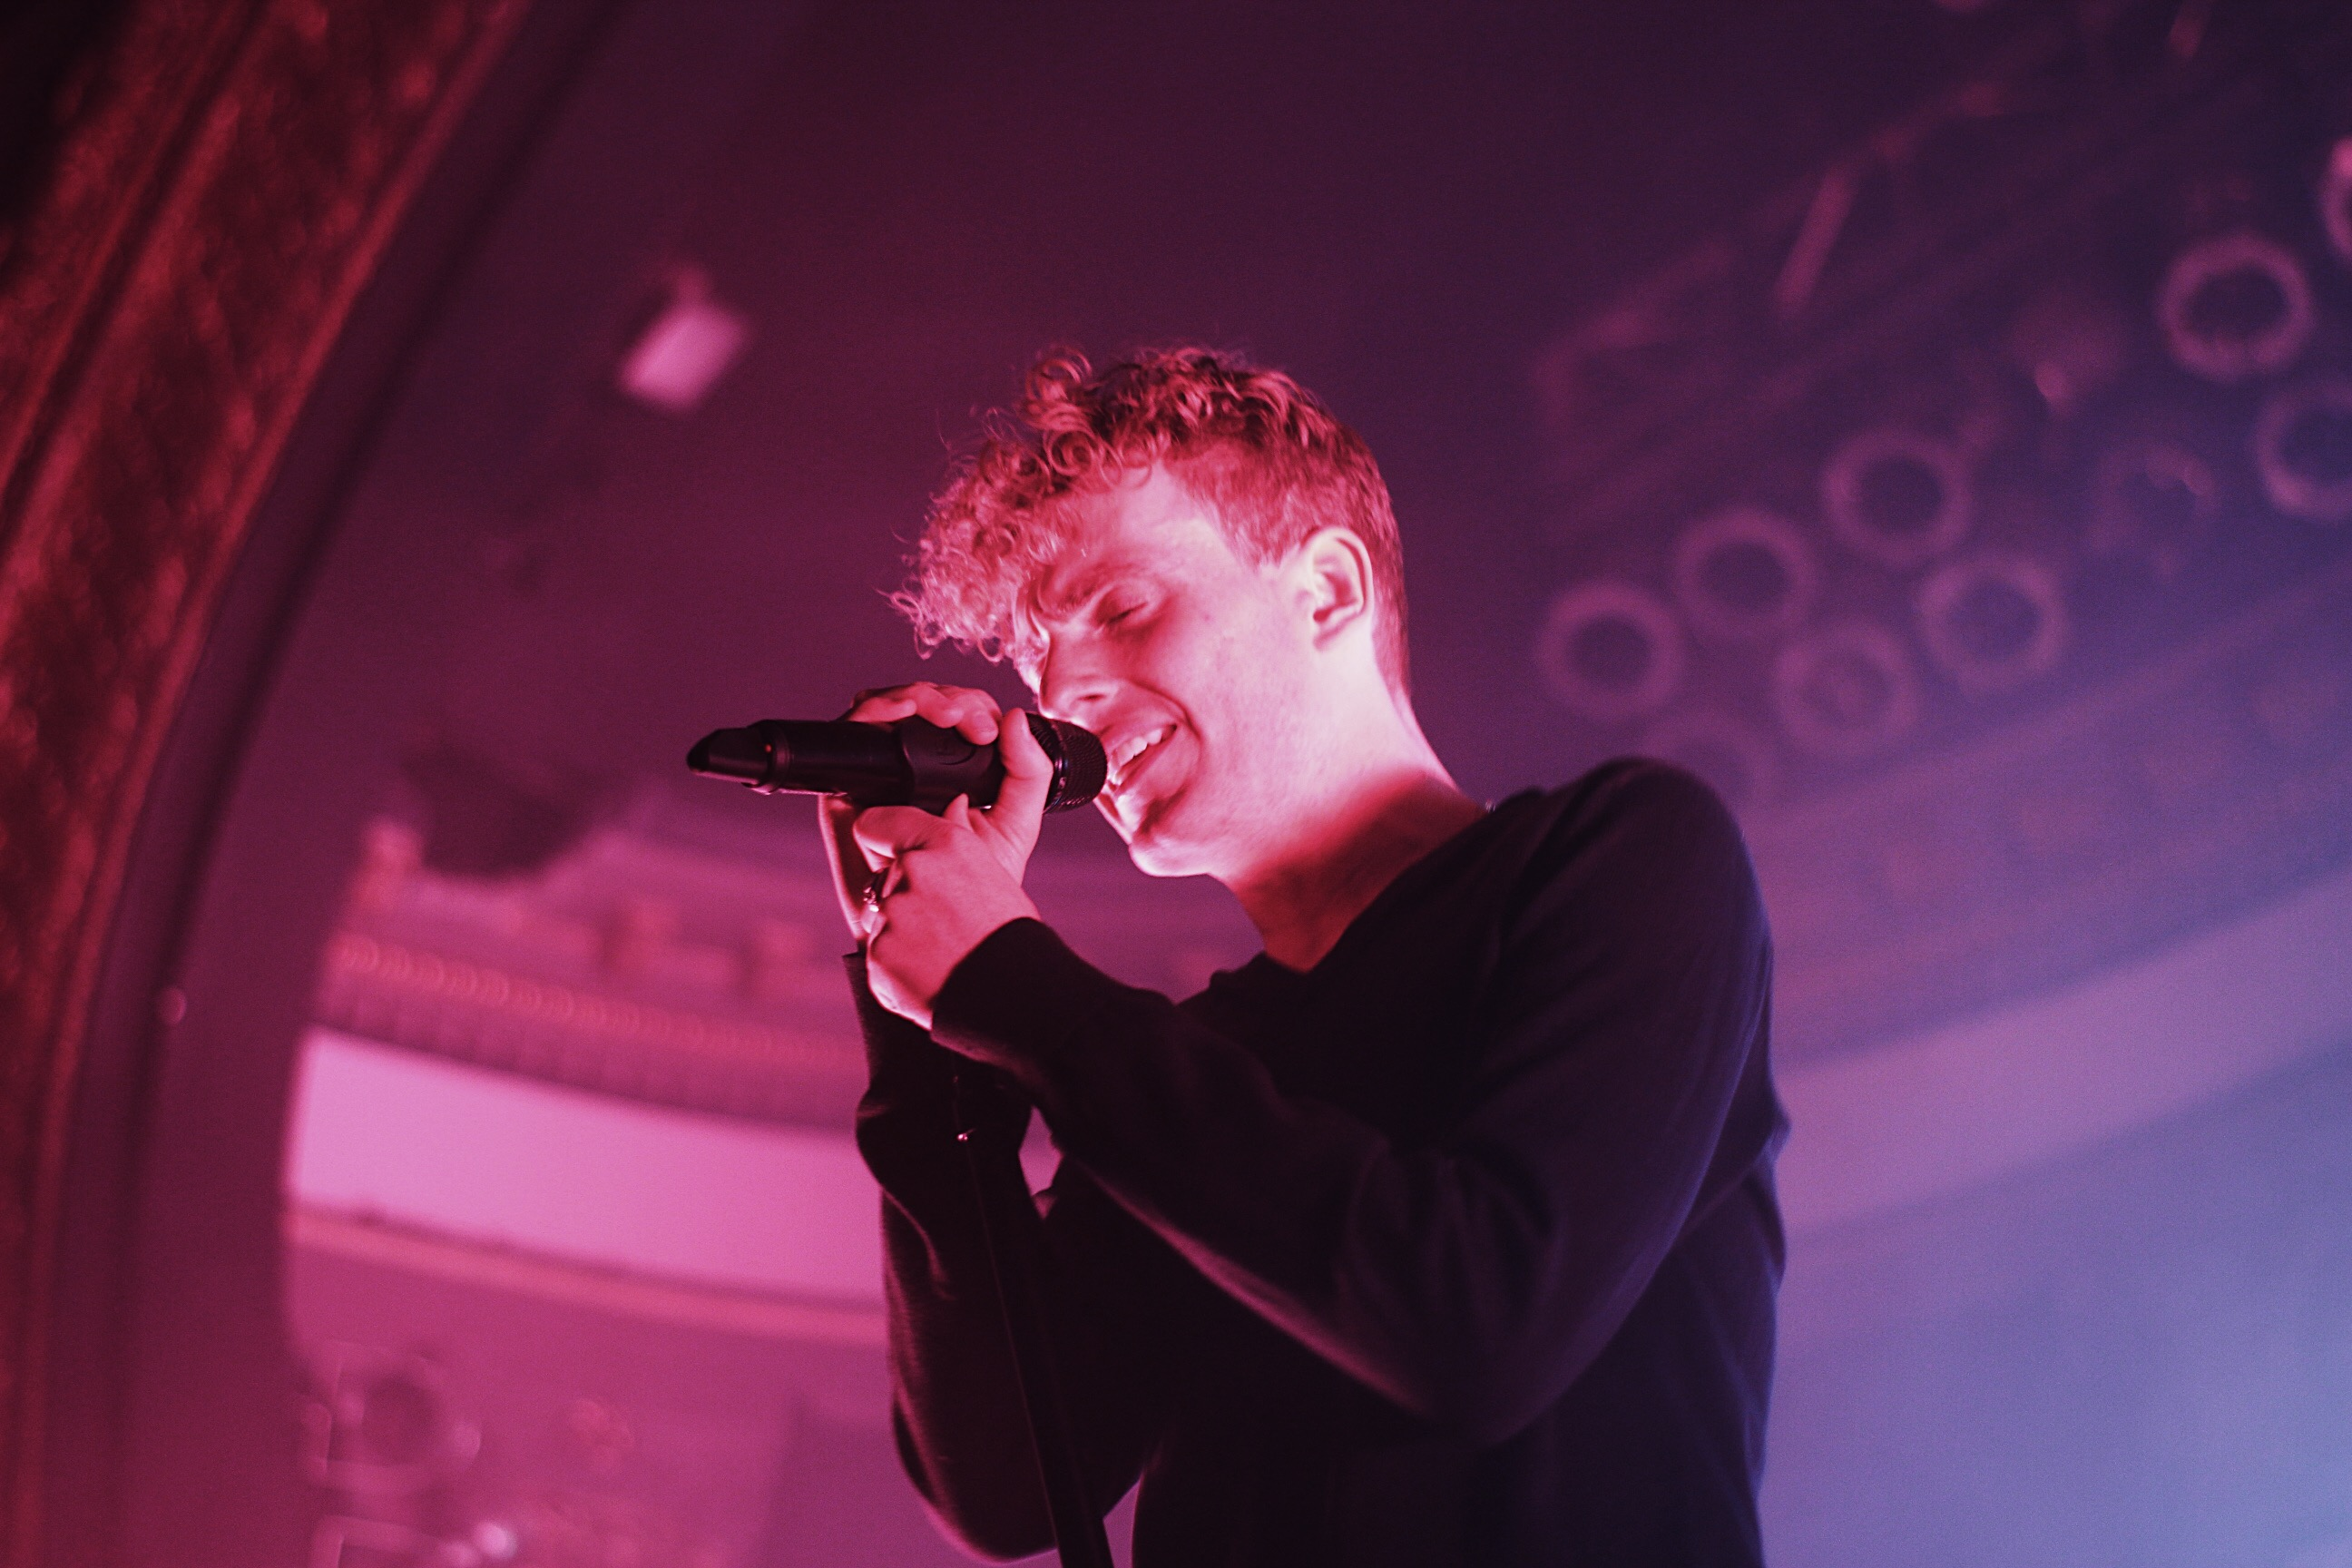 COIN brings 2019 tour to Newport Music Hall